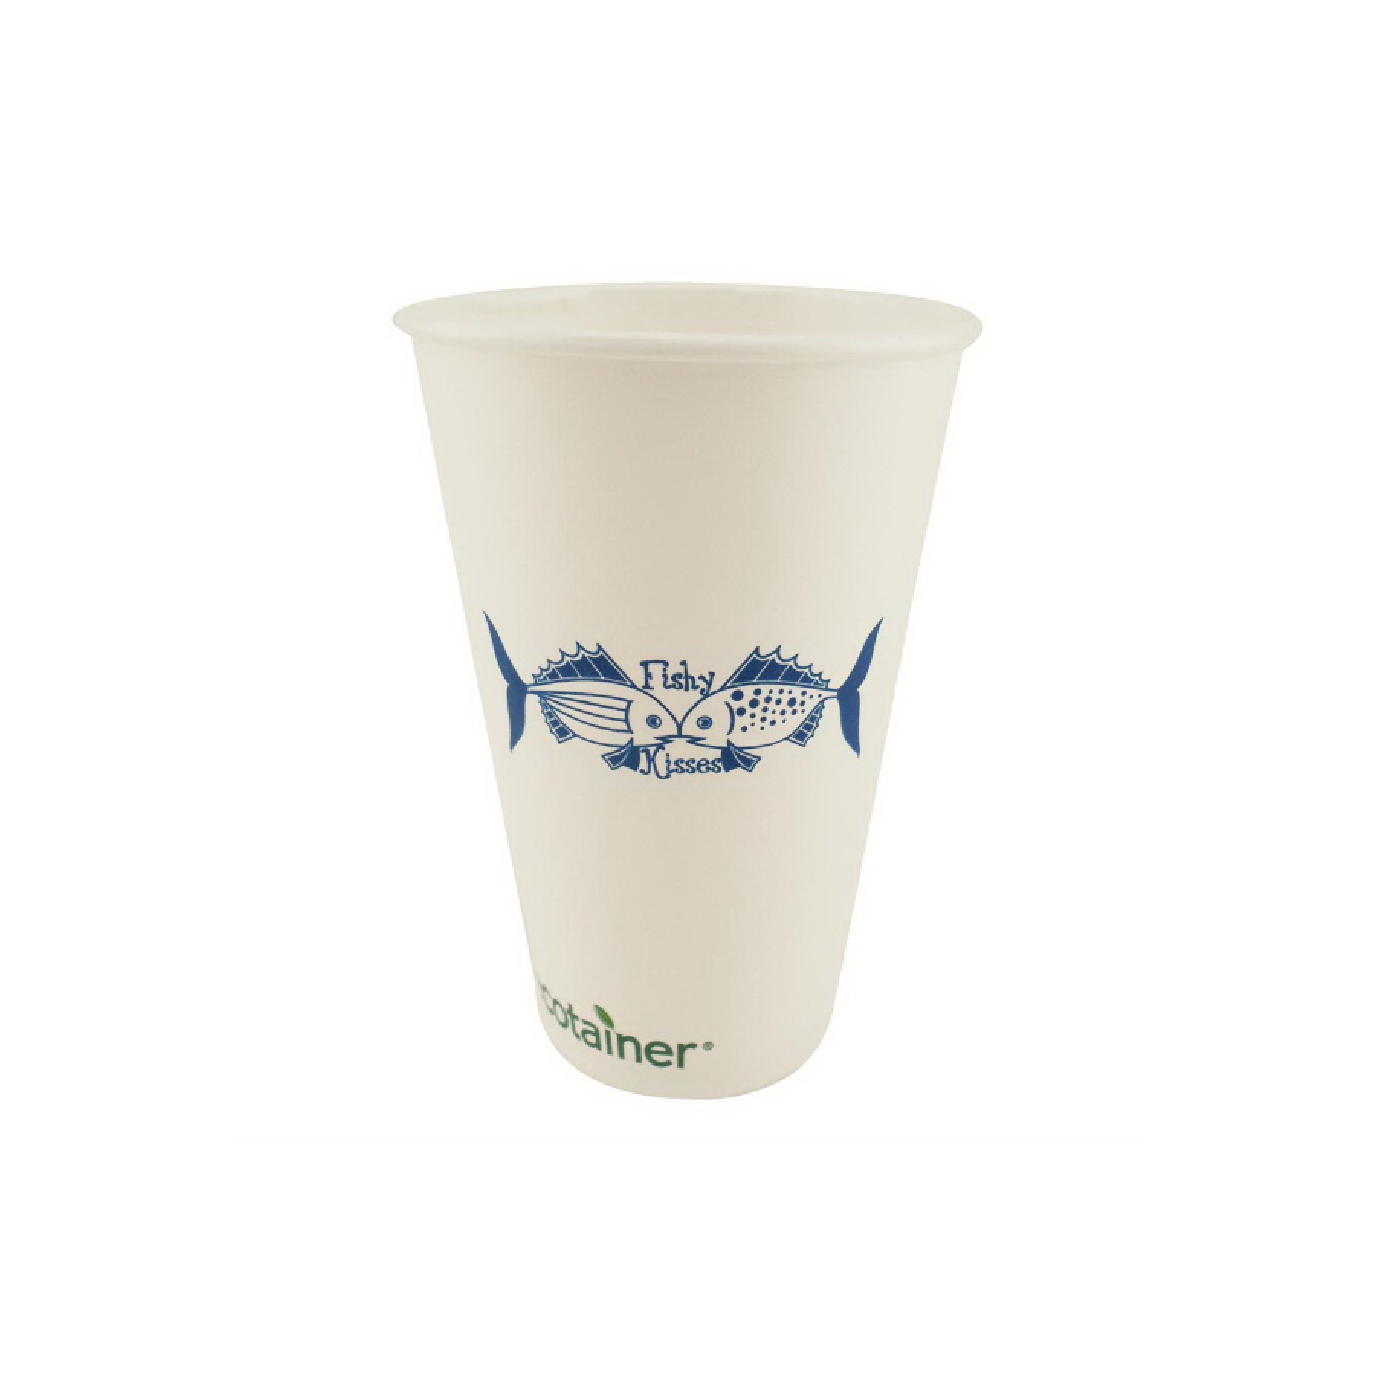 custom branded biodegradable party cup